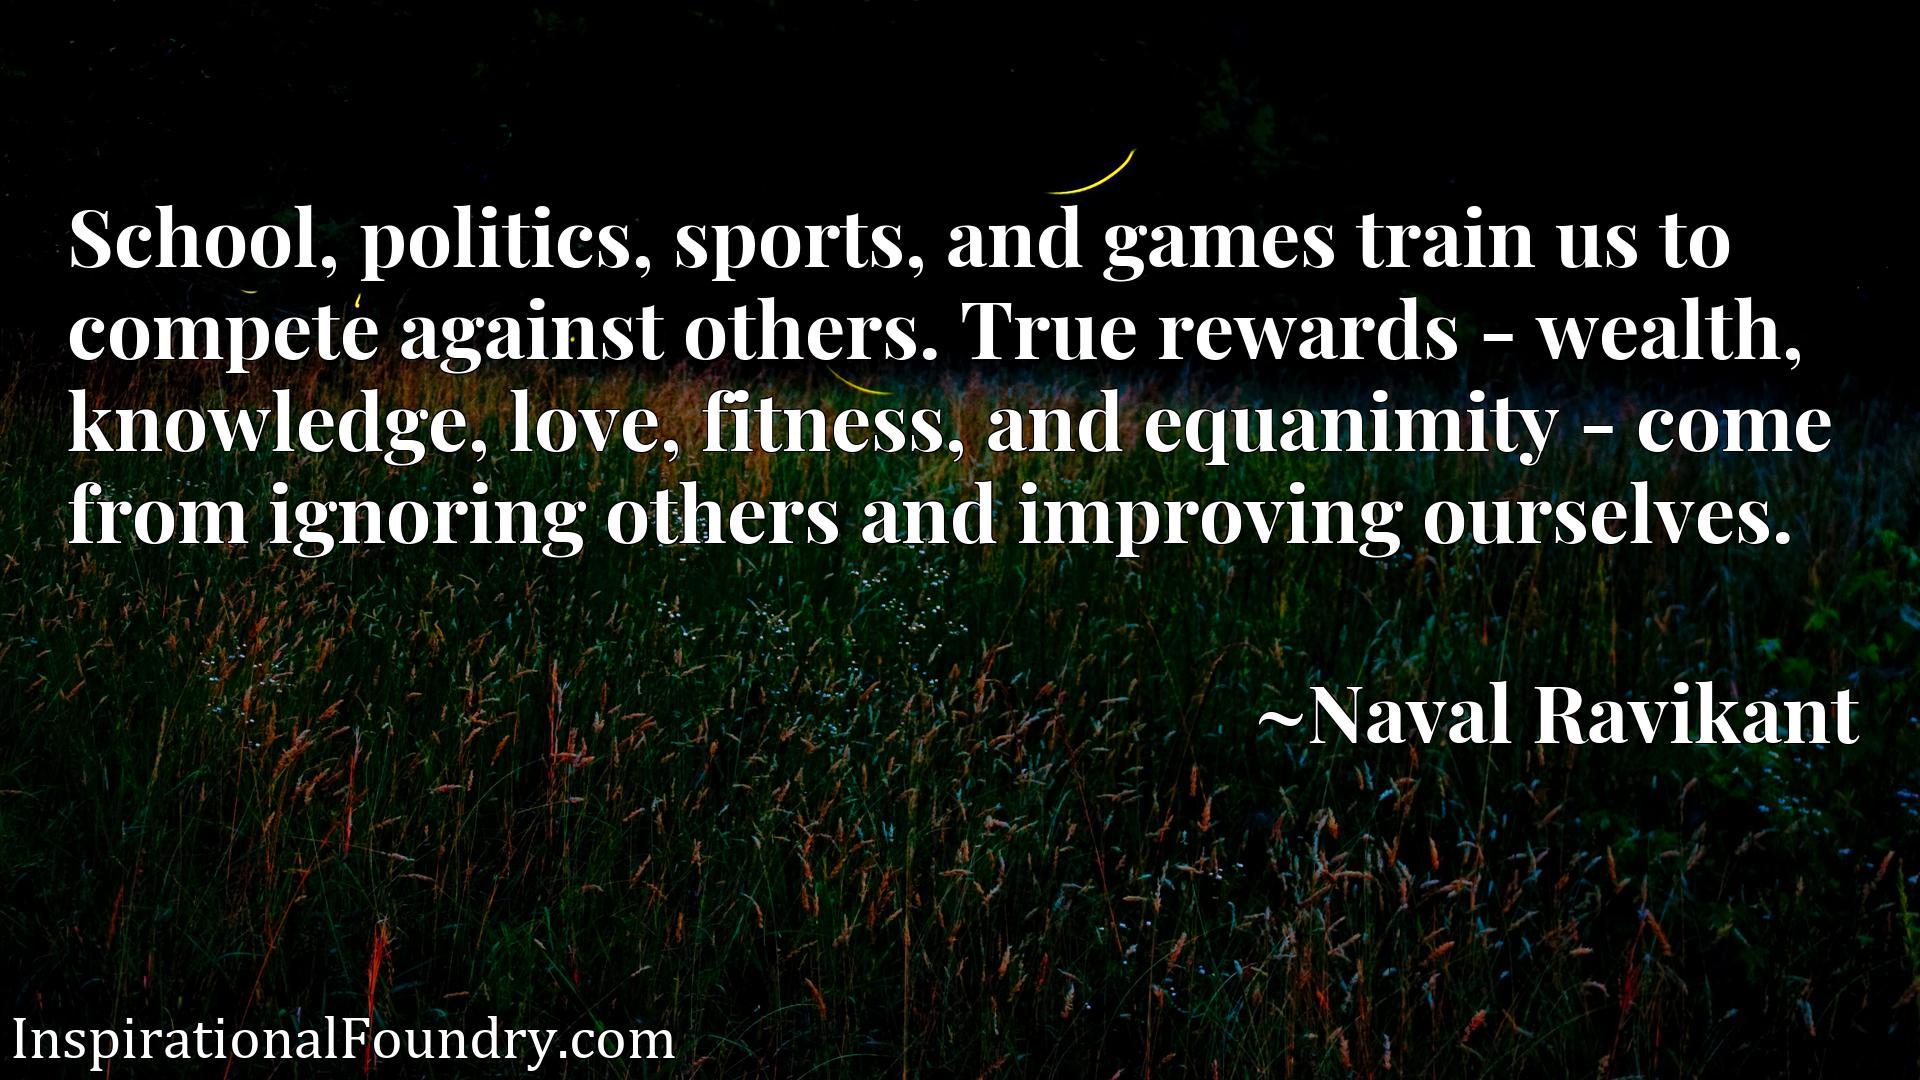 Quote Picture :School, politics, sports, and games train us to compete against others. True rewards - wealth, knowledge, love, fitness, and equanimity - come from ignoring others and improving ourselves.